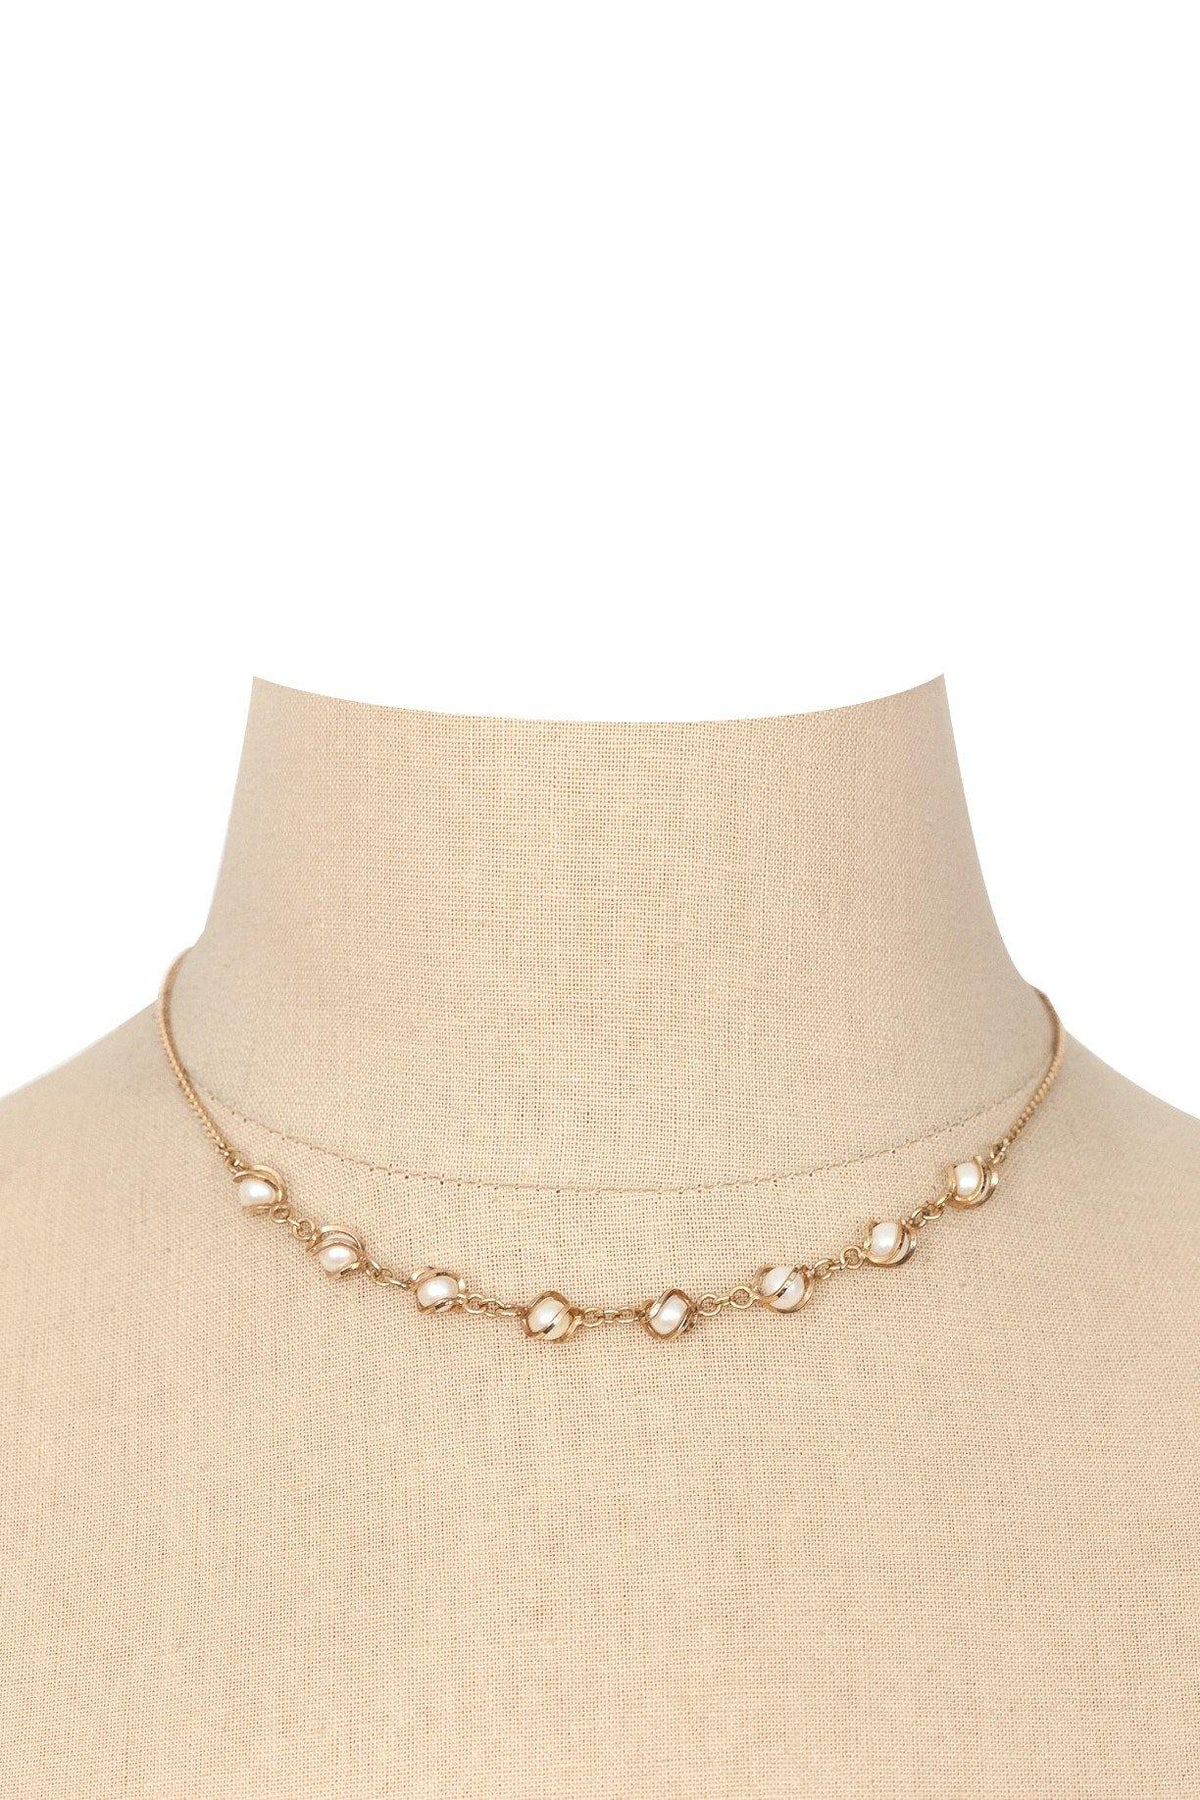 70's Vintage Dainty Pearl Necklace